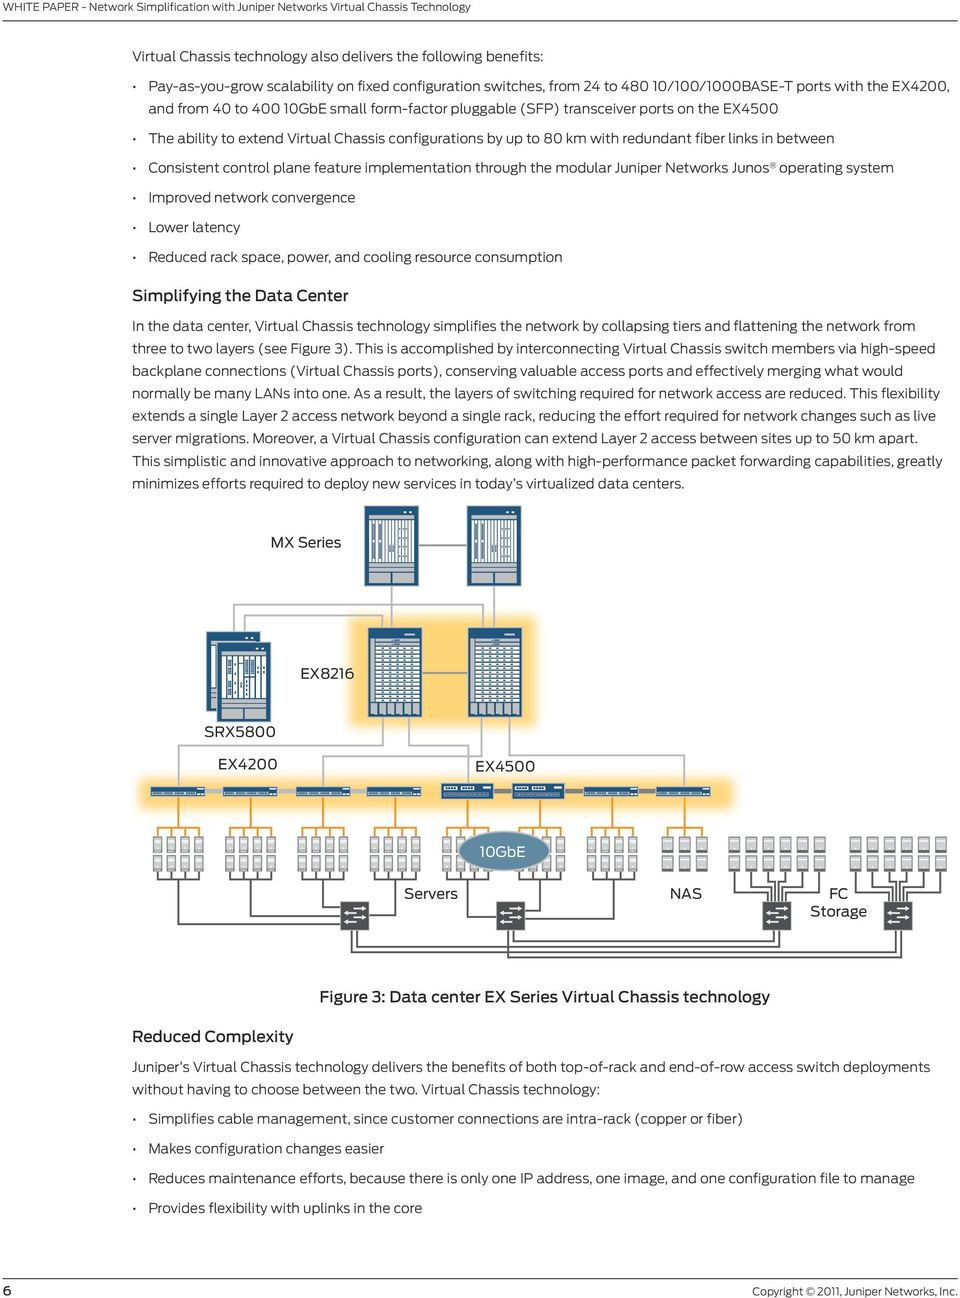 links in between Consistent control plane feature implementation through the modular Juniper Networks Junos operating system Improved network convergence Lower latency Reduced rack space, power, and